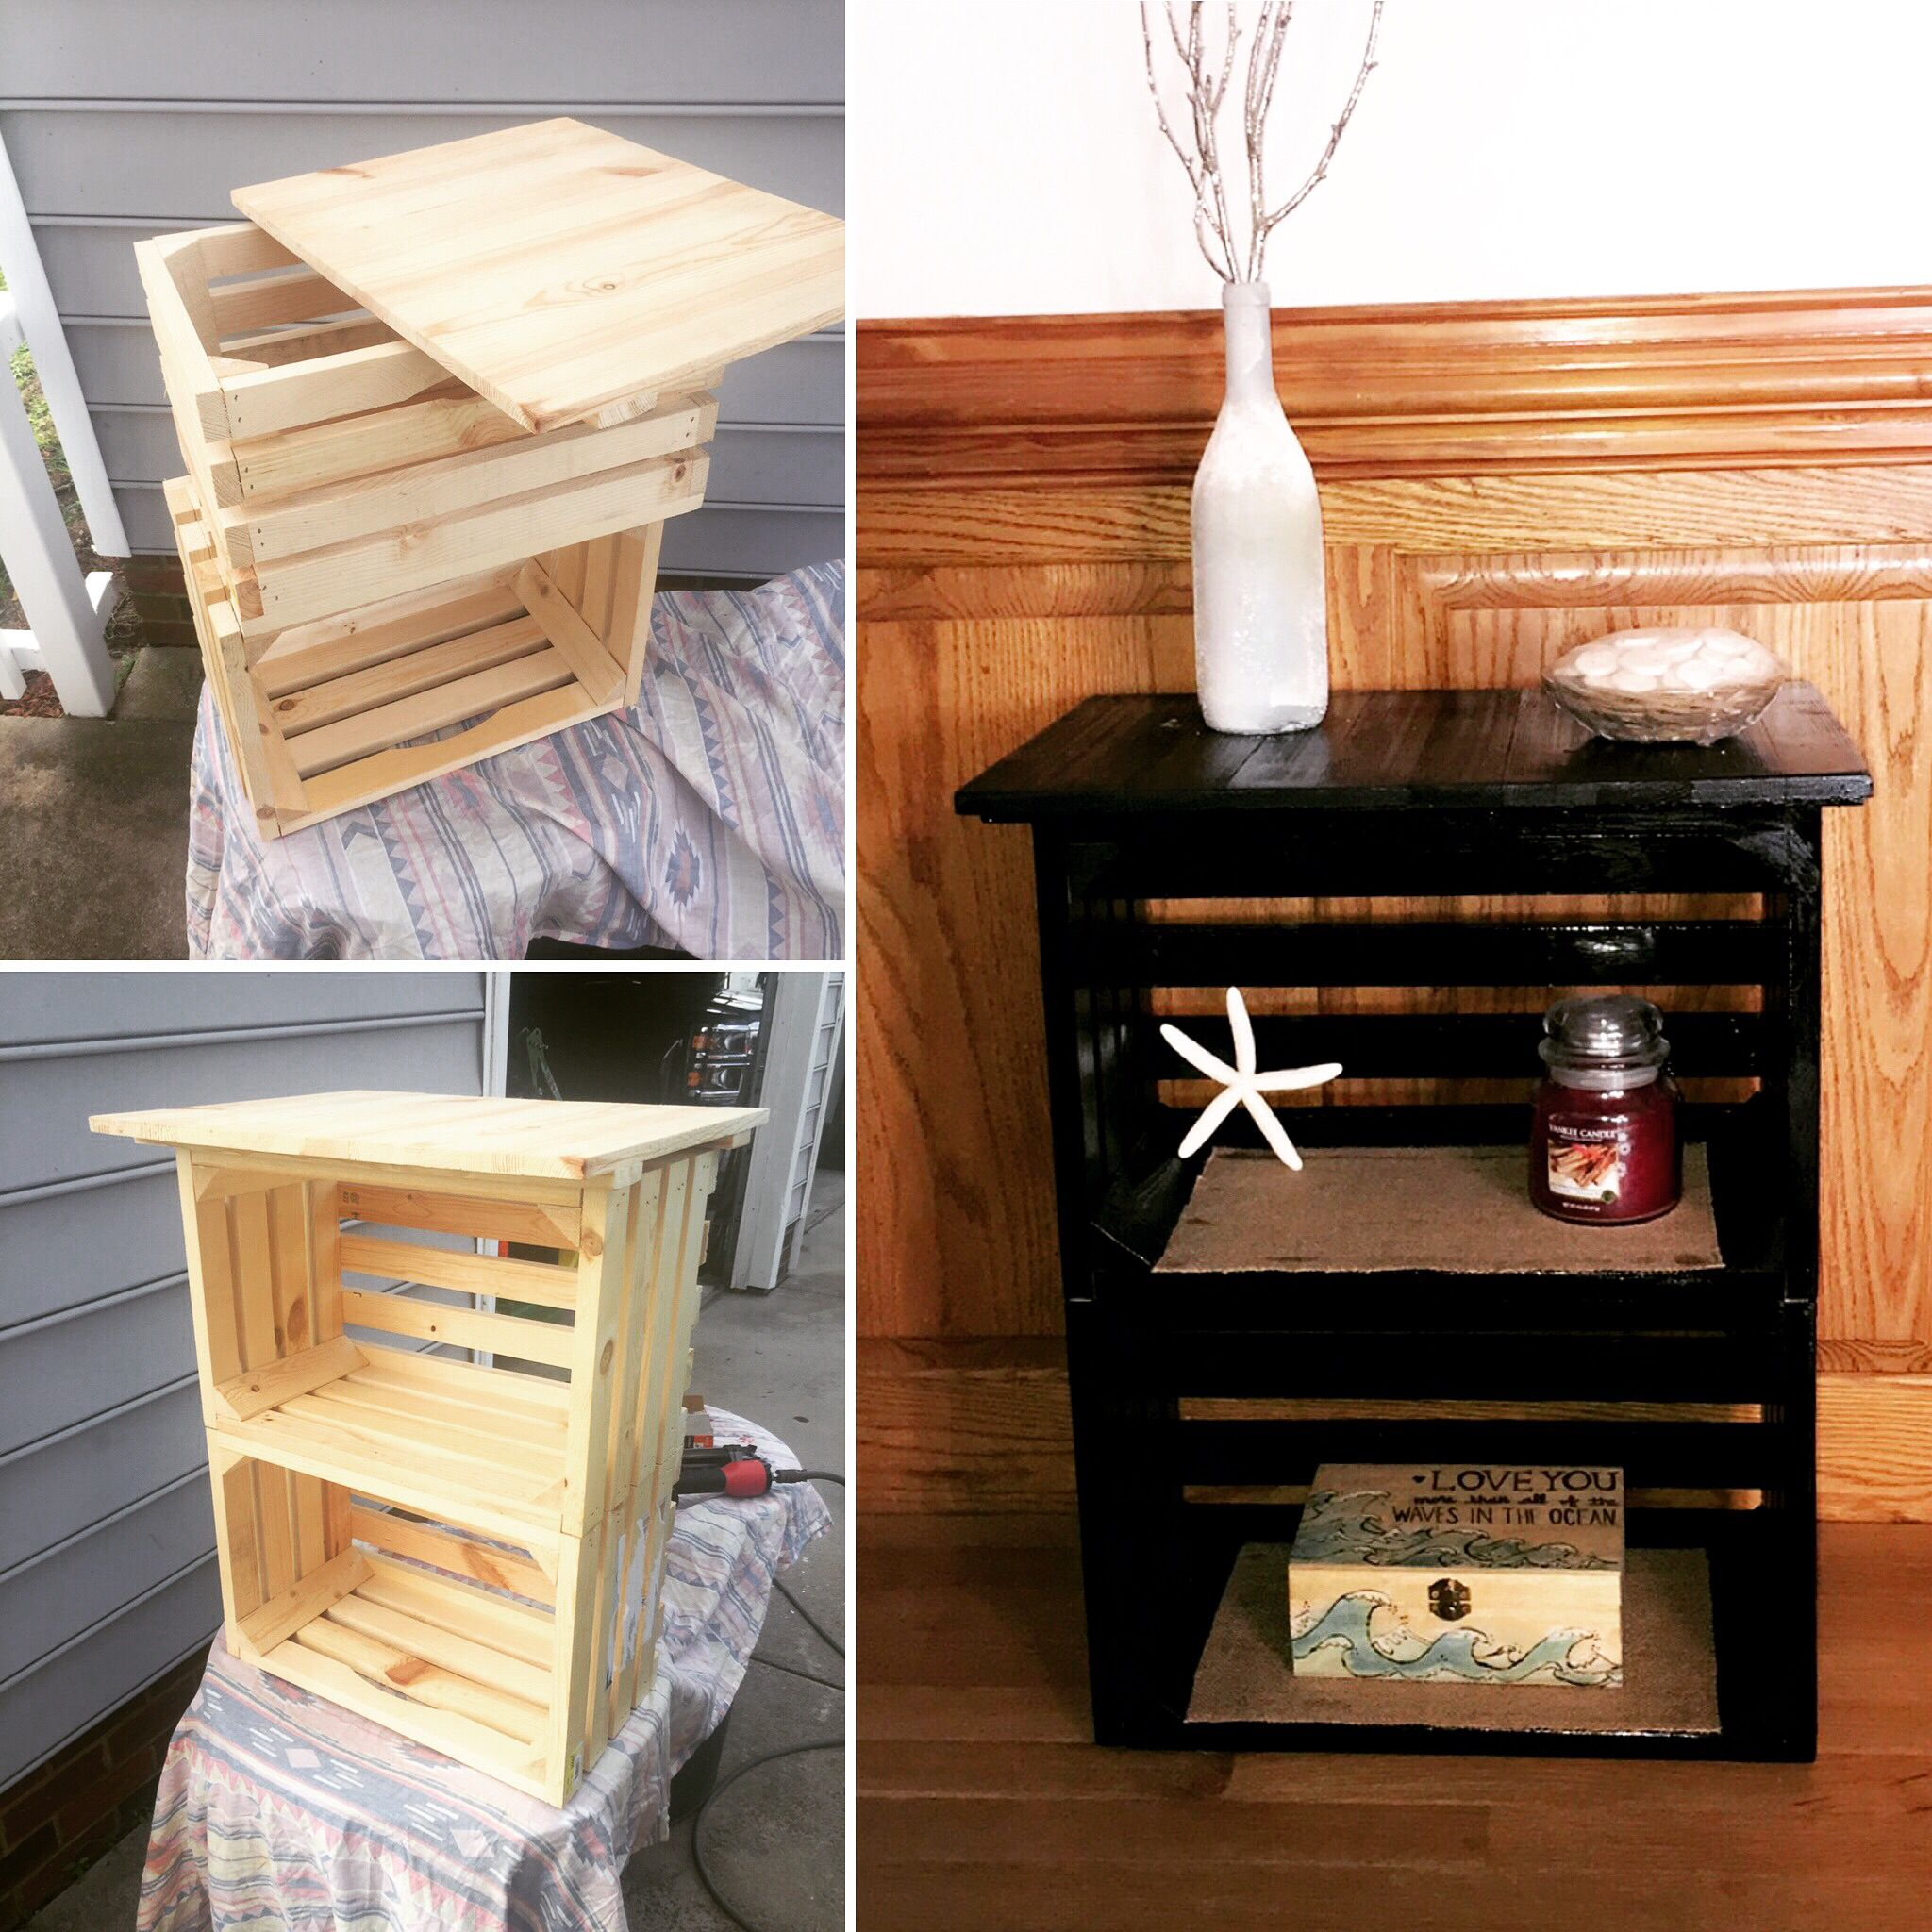 diy crate nightstand pallet craft ideas end table tips for rustic furniture large tall homesense north london garden bench coffee made with pipe legs dog cages inside house the